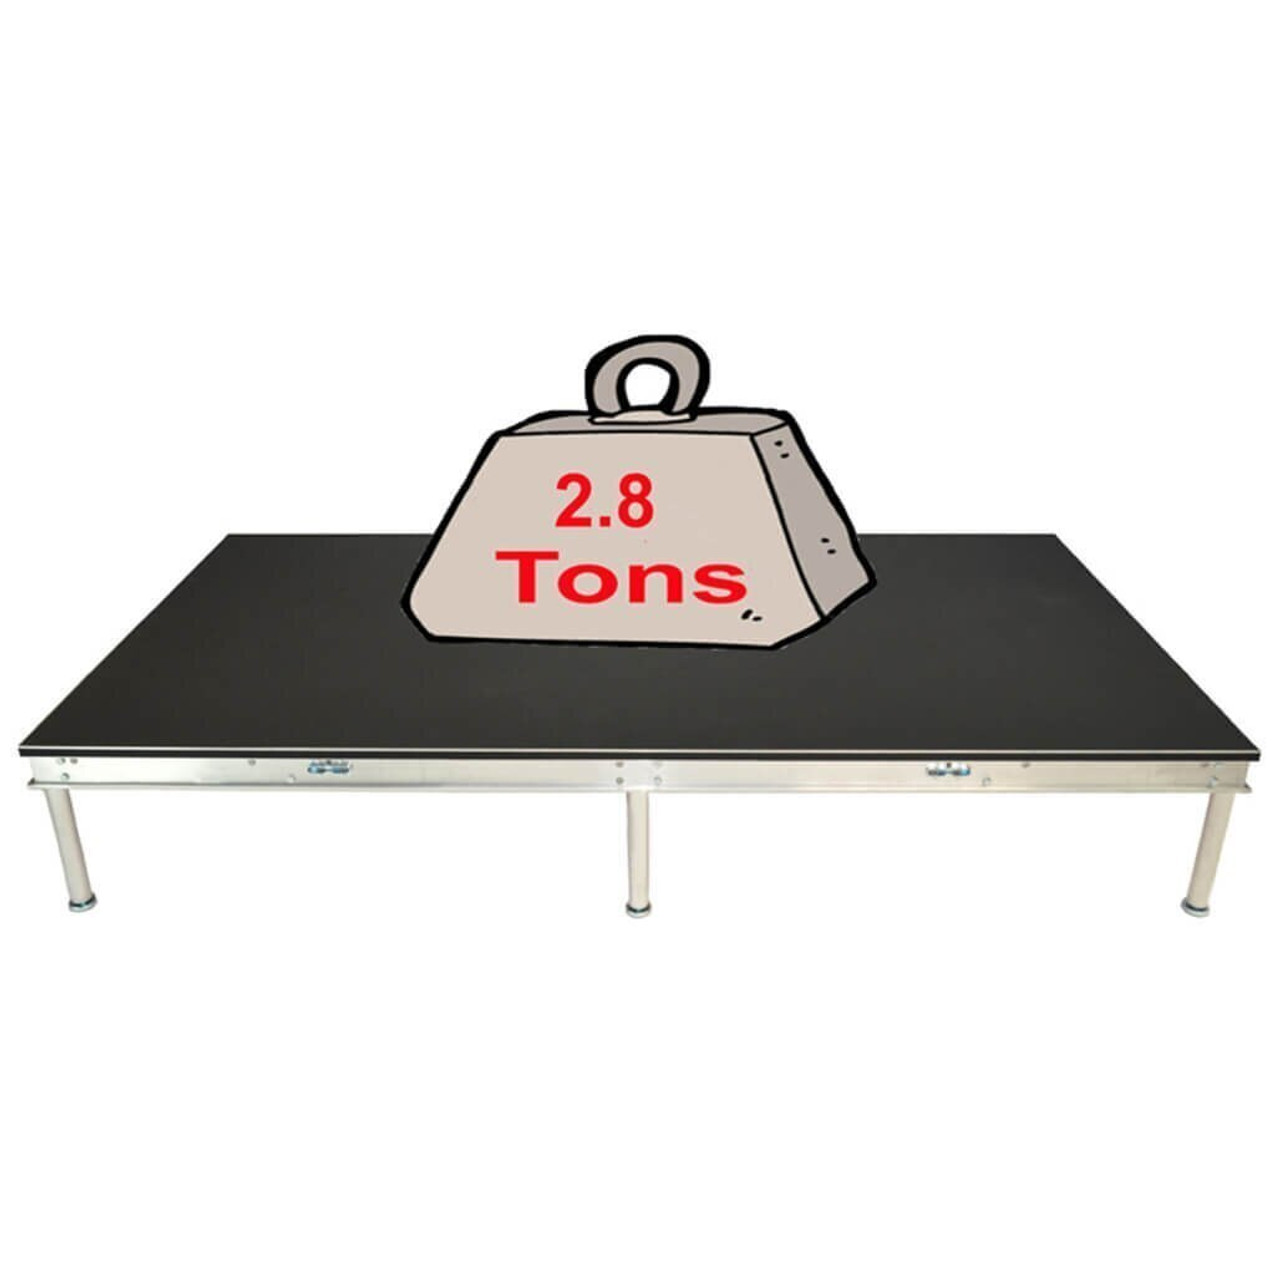 Top rated Quik Stage 4' x 24' High Portable Stage Package with Black Polyvinyl Non-Skid Surface. Additional Heights and Surfaces Available - Holds 2.8 tons per 4 x 8 or 1.4 tons per 4 x 4 when spread out evenly